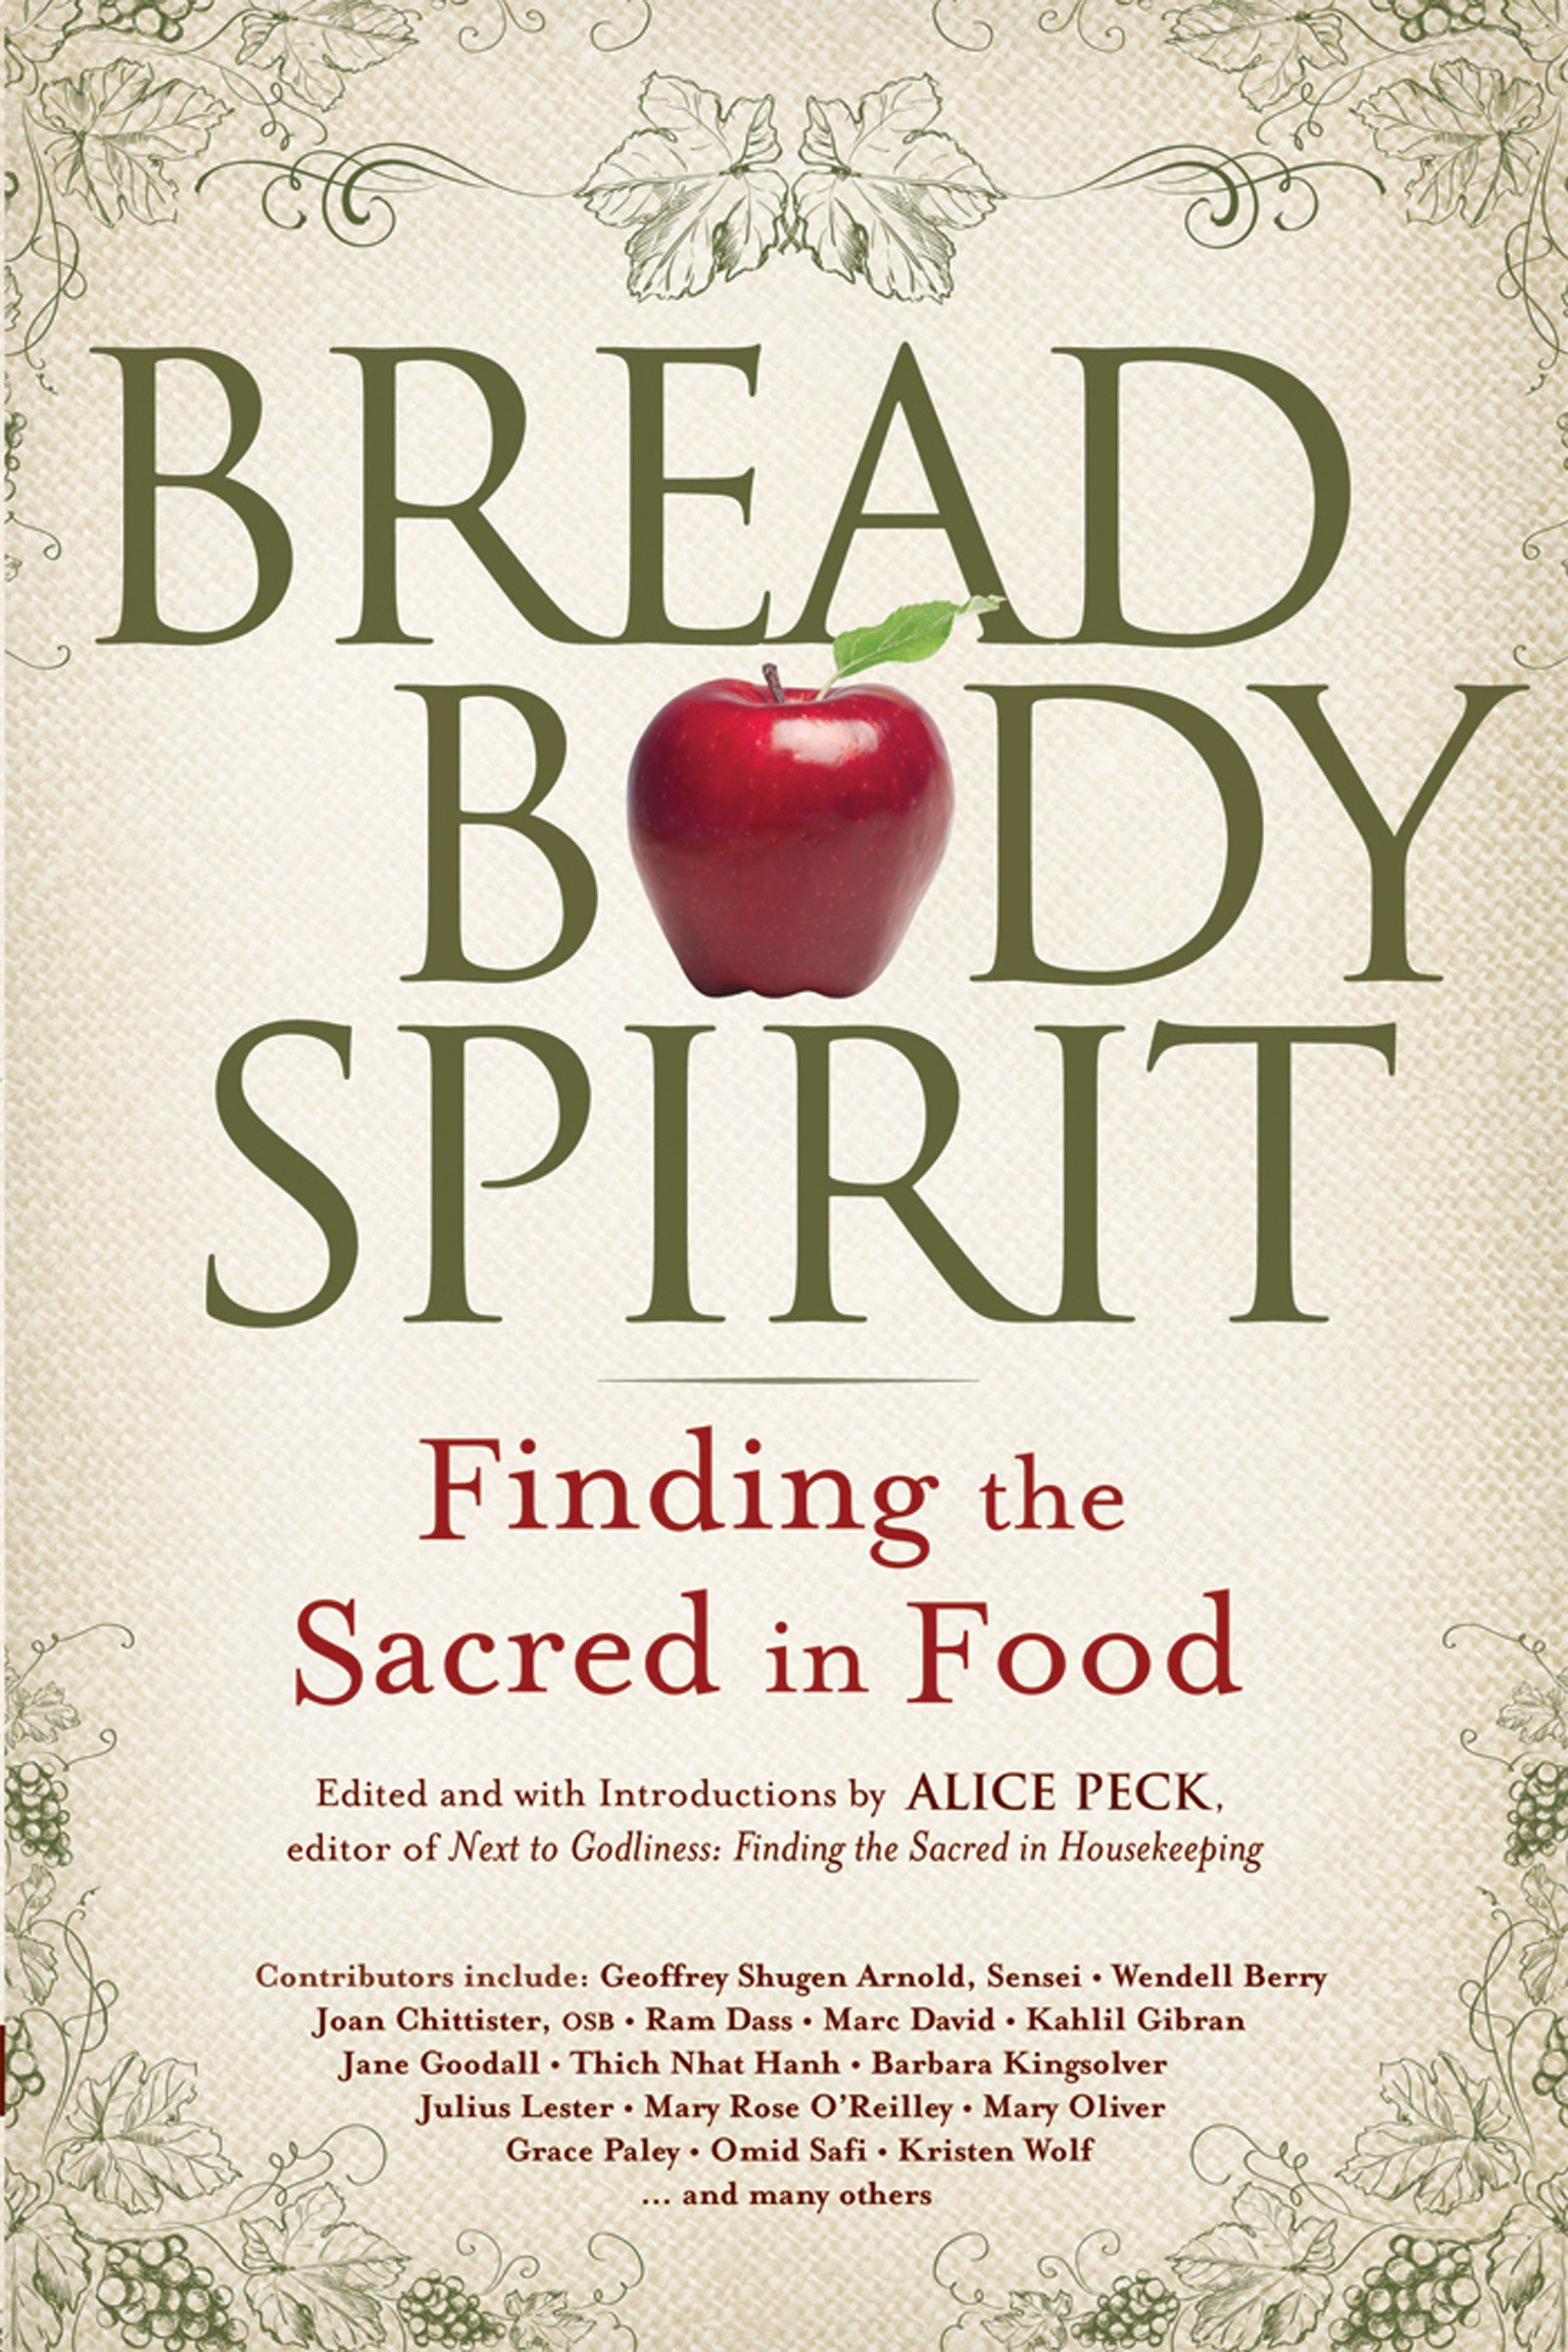 Bread body spirit finding the sacred in food alice peck bread body spirit finding the sacred in food alice peck 9781594732423 amazon books fandeluxe Images